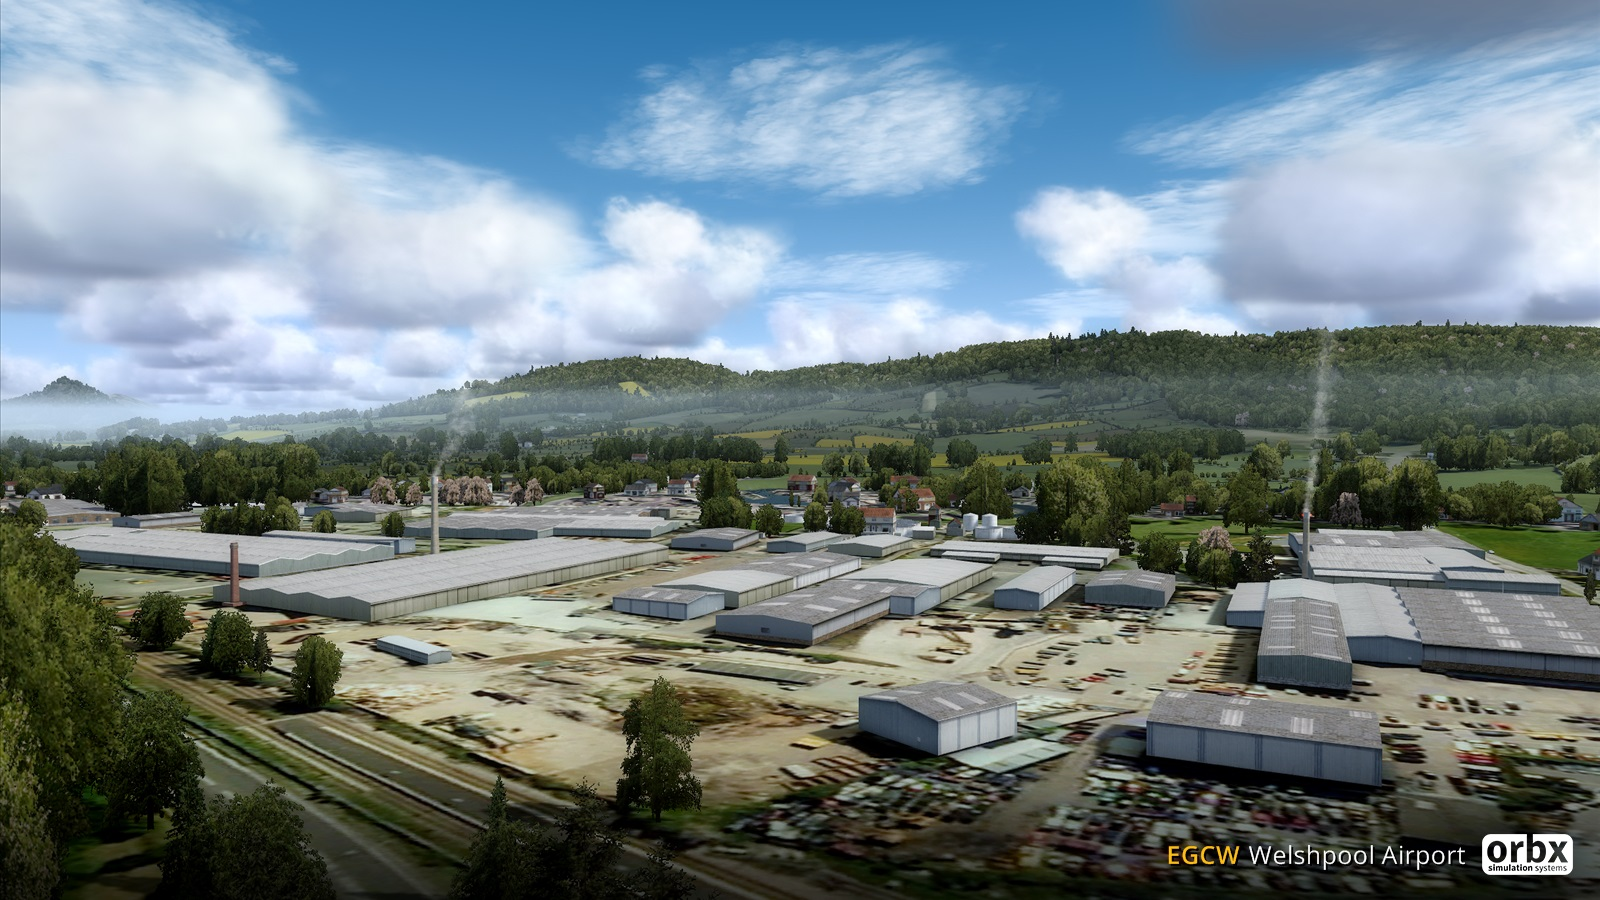 ORBX EGCW Welshpool Airport - Released